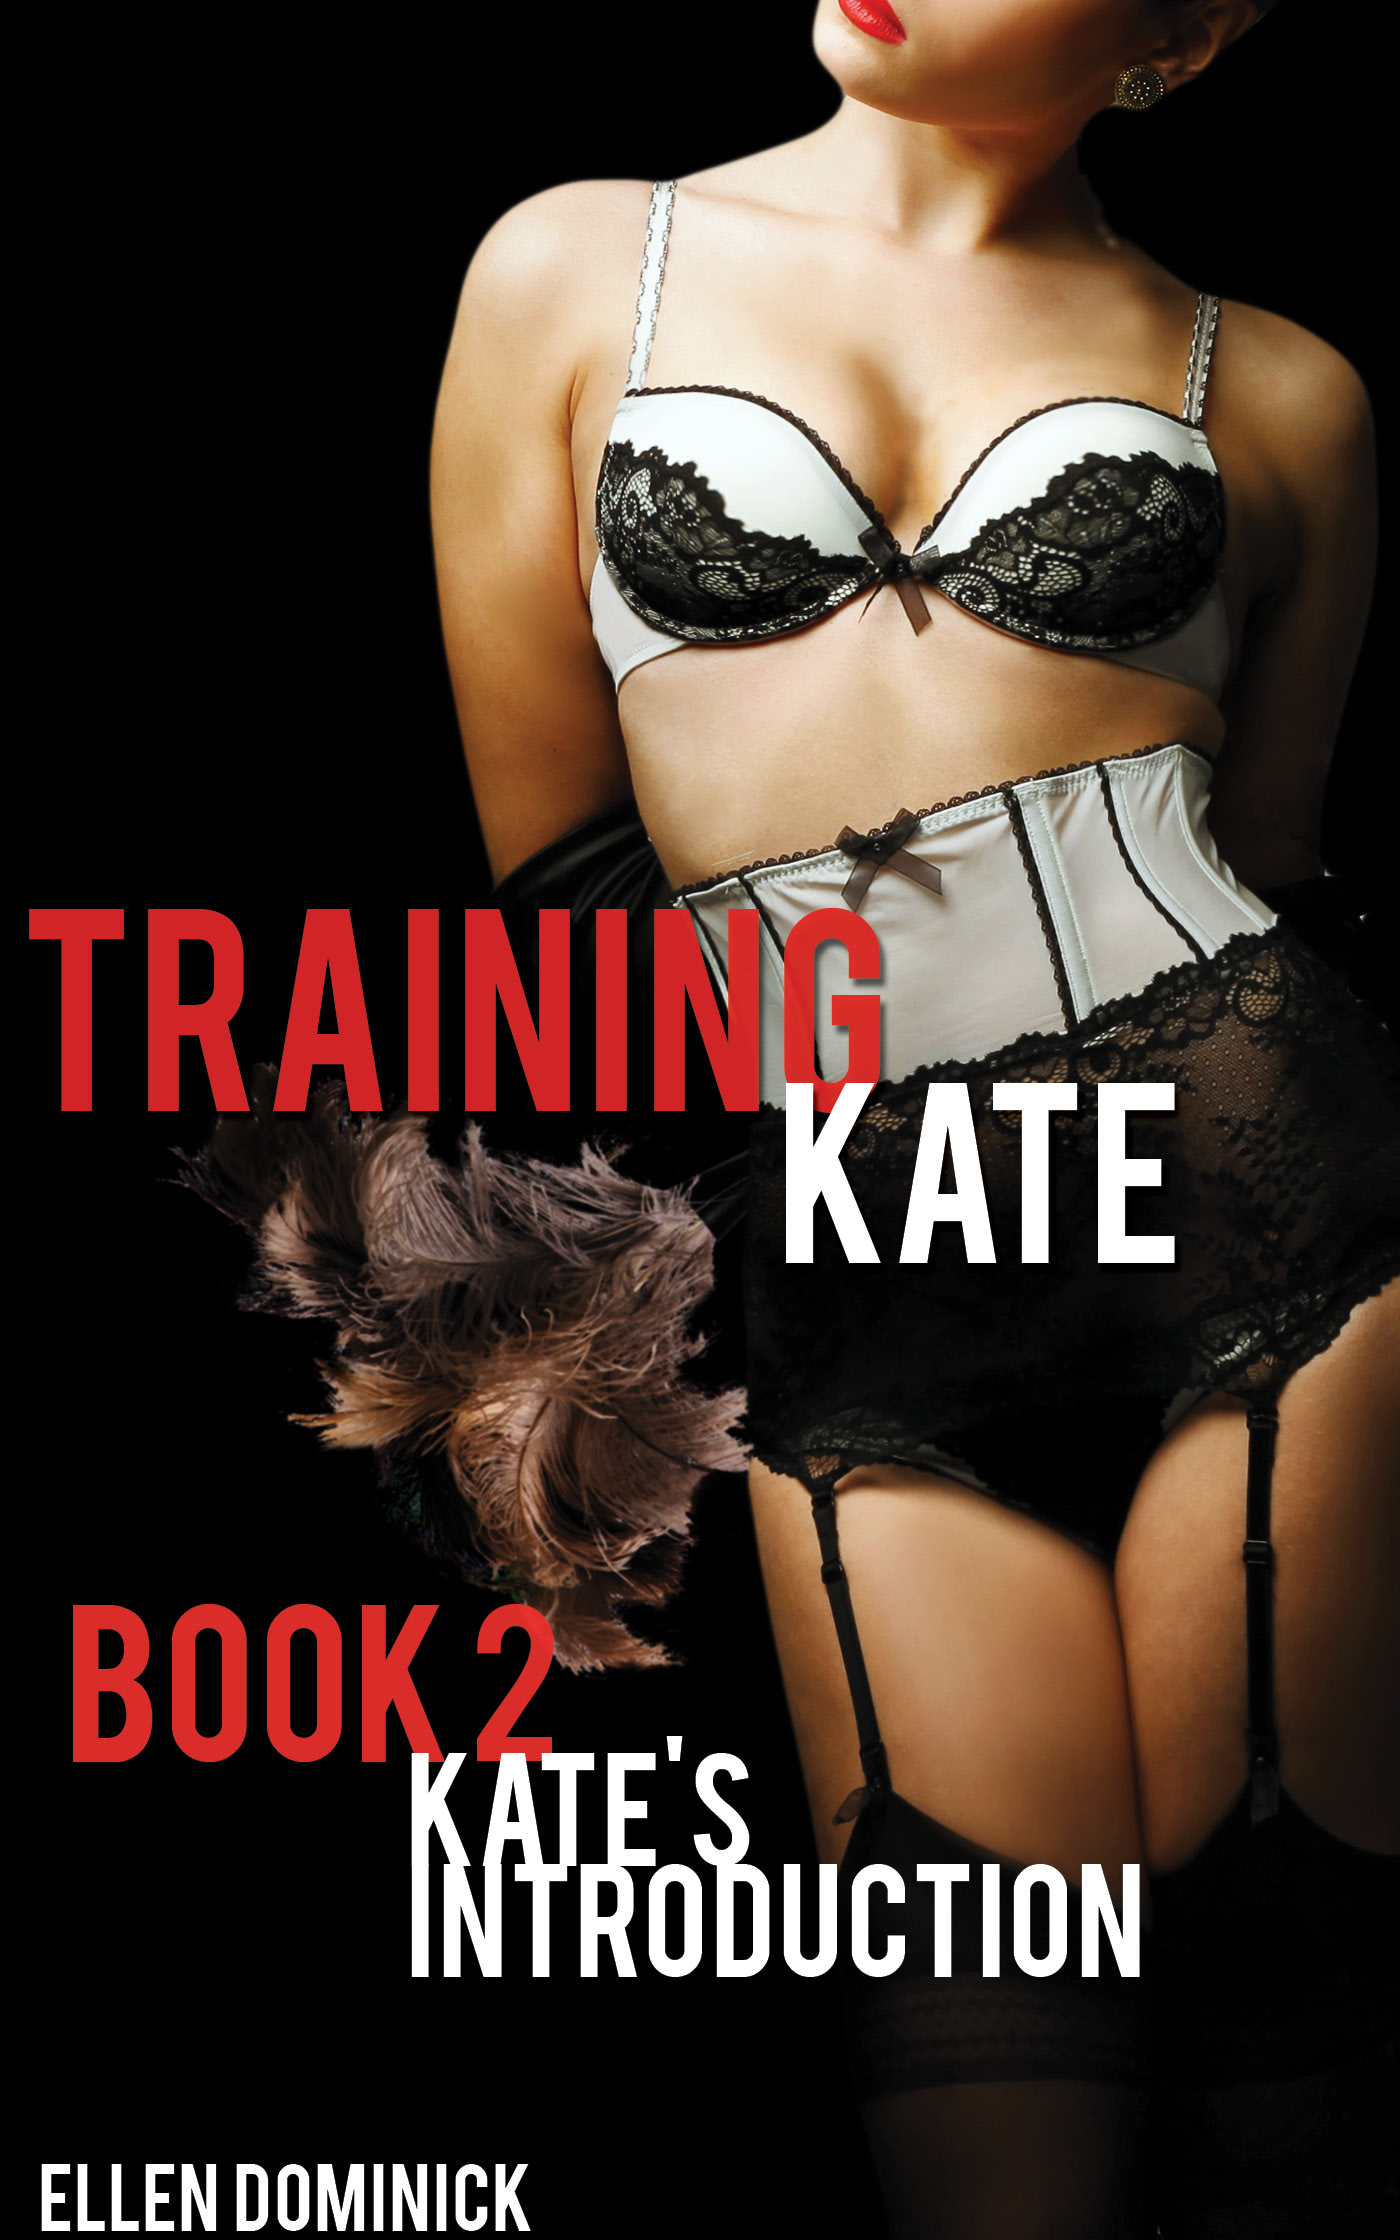 Kate's introduction (training kate: the submission of a maid book 2)